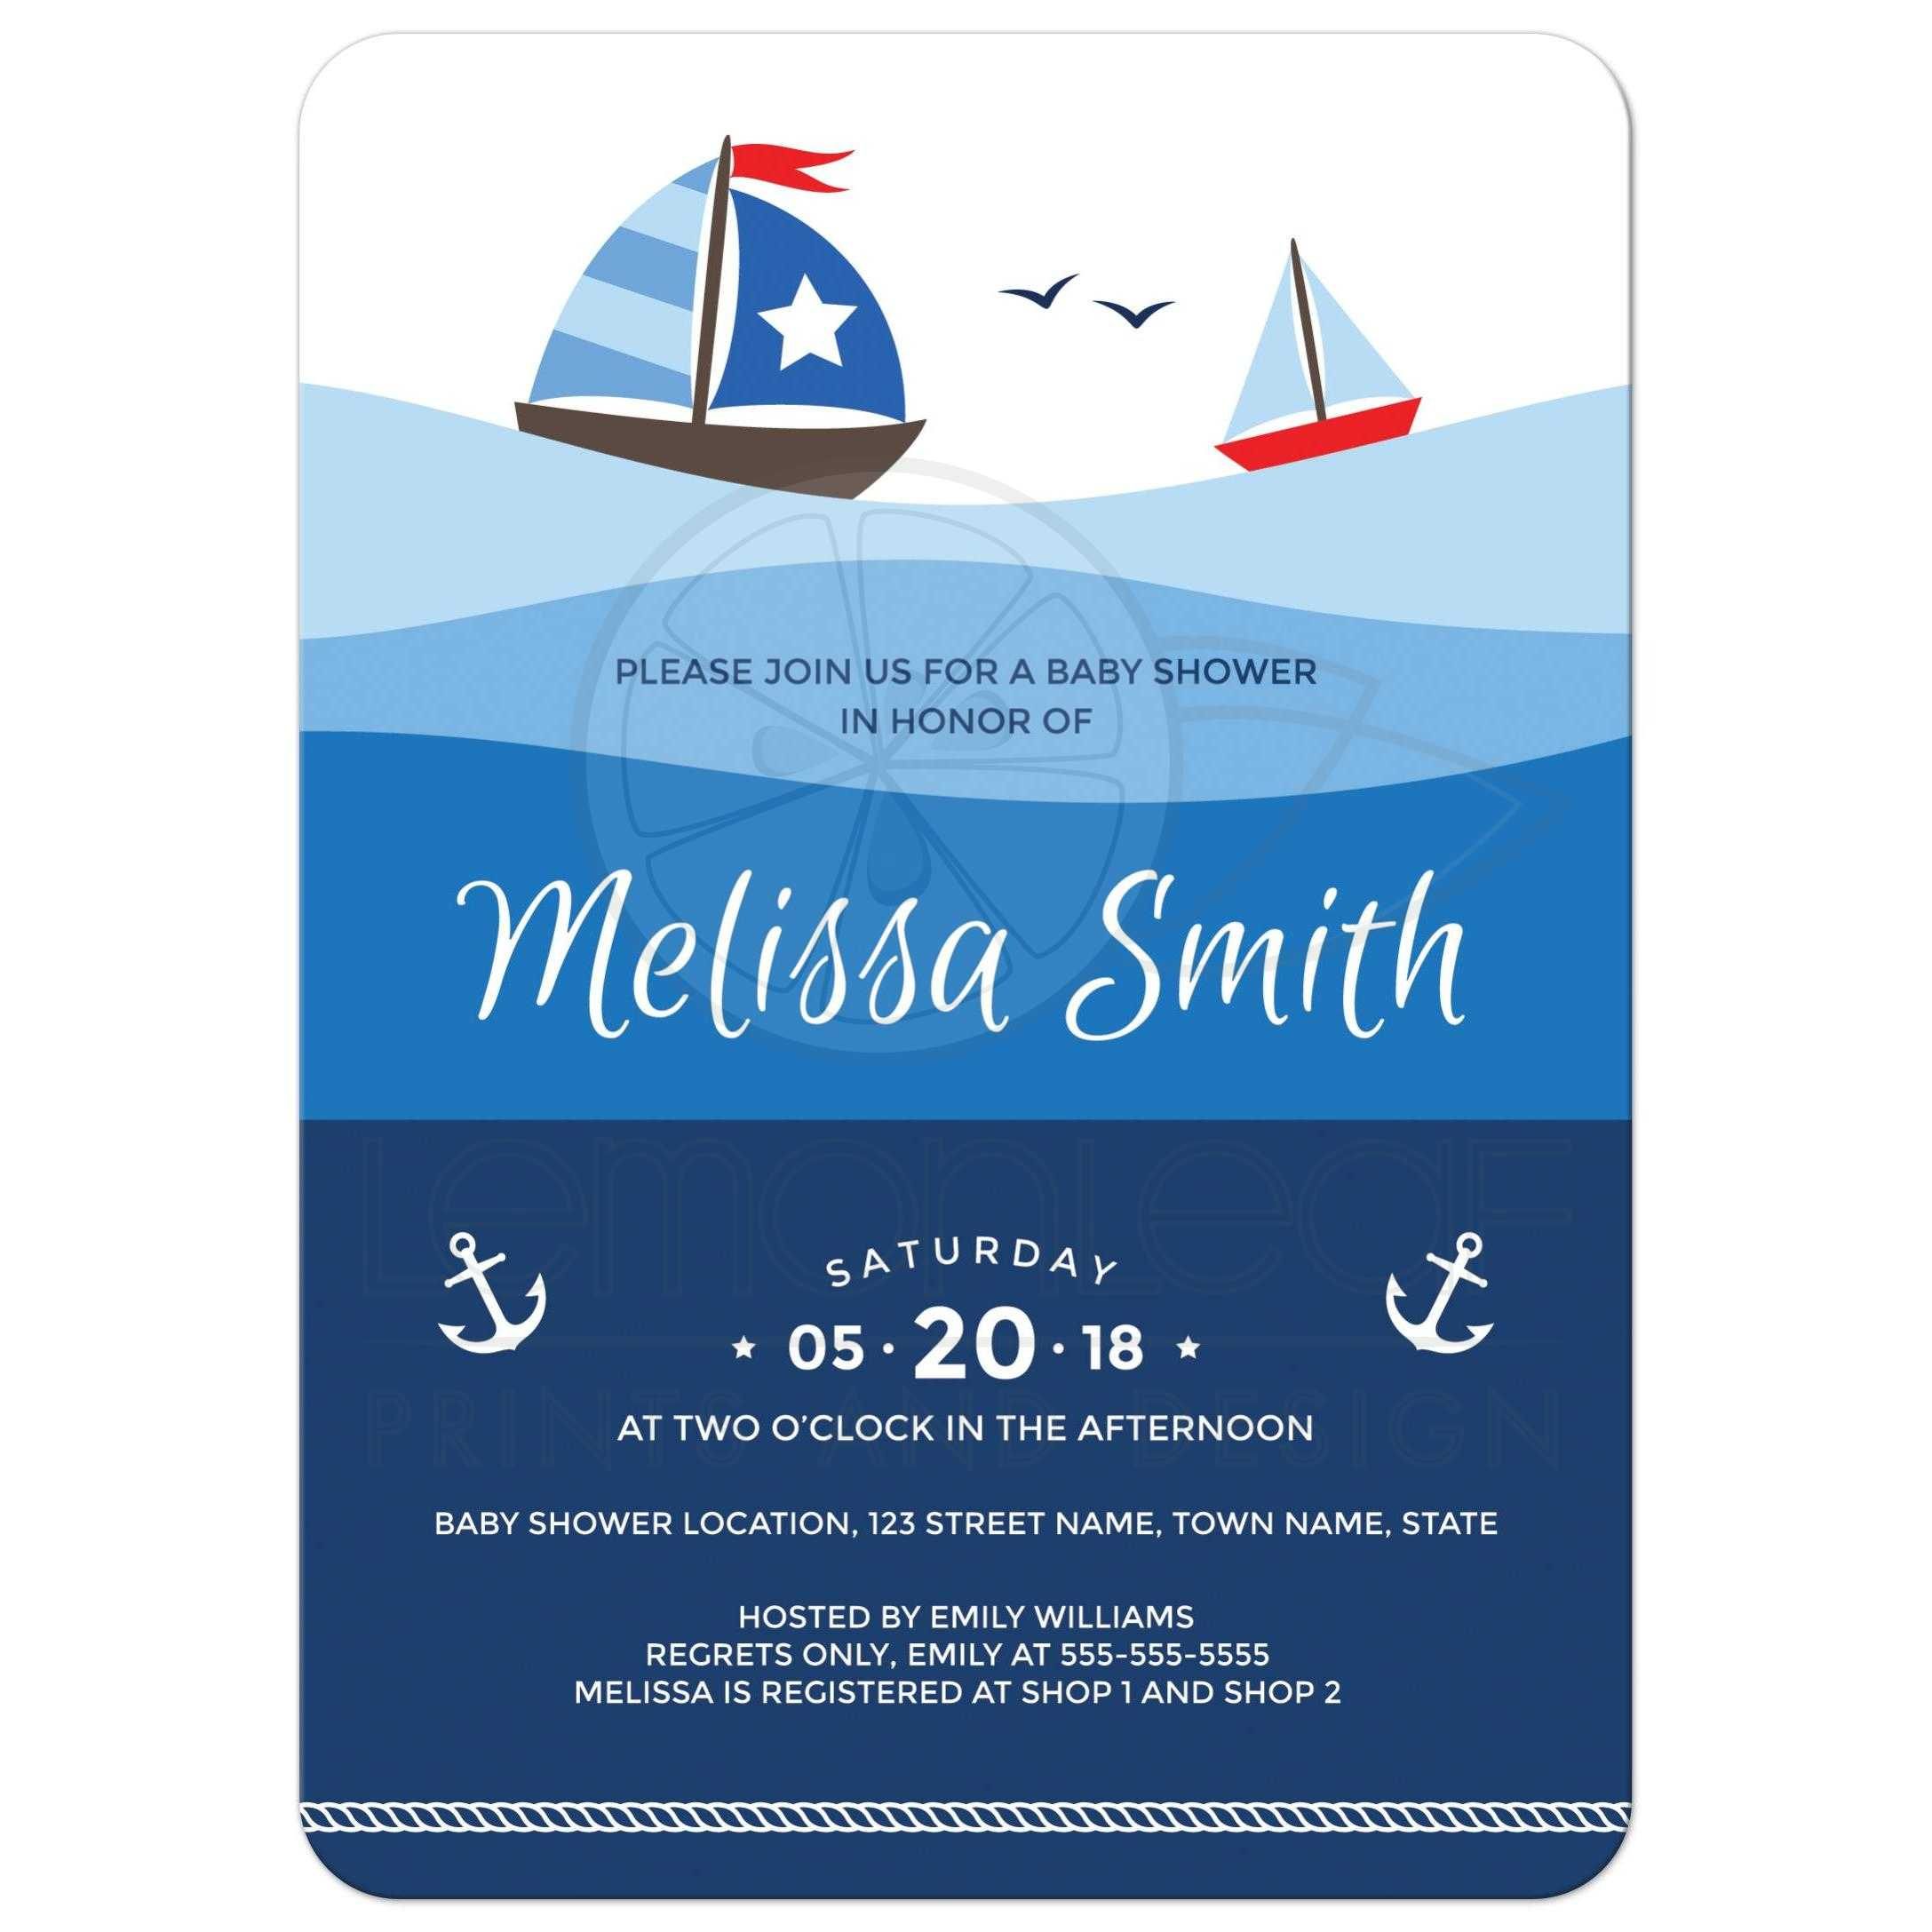 Nautical baby shower invitation with sailboats on big ombre ocean waves sailboat baby shower invitation with boats anchor and rope border filmwisefo Images